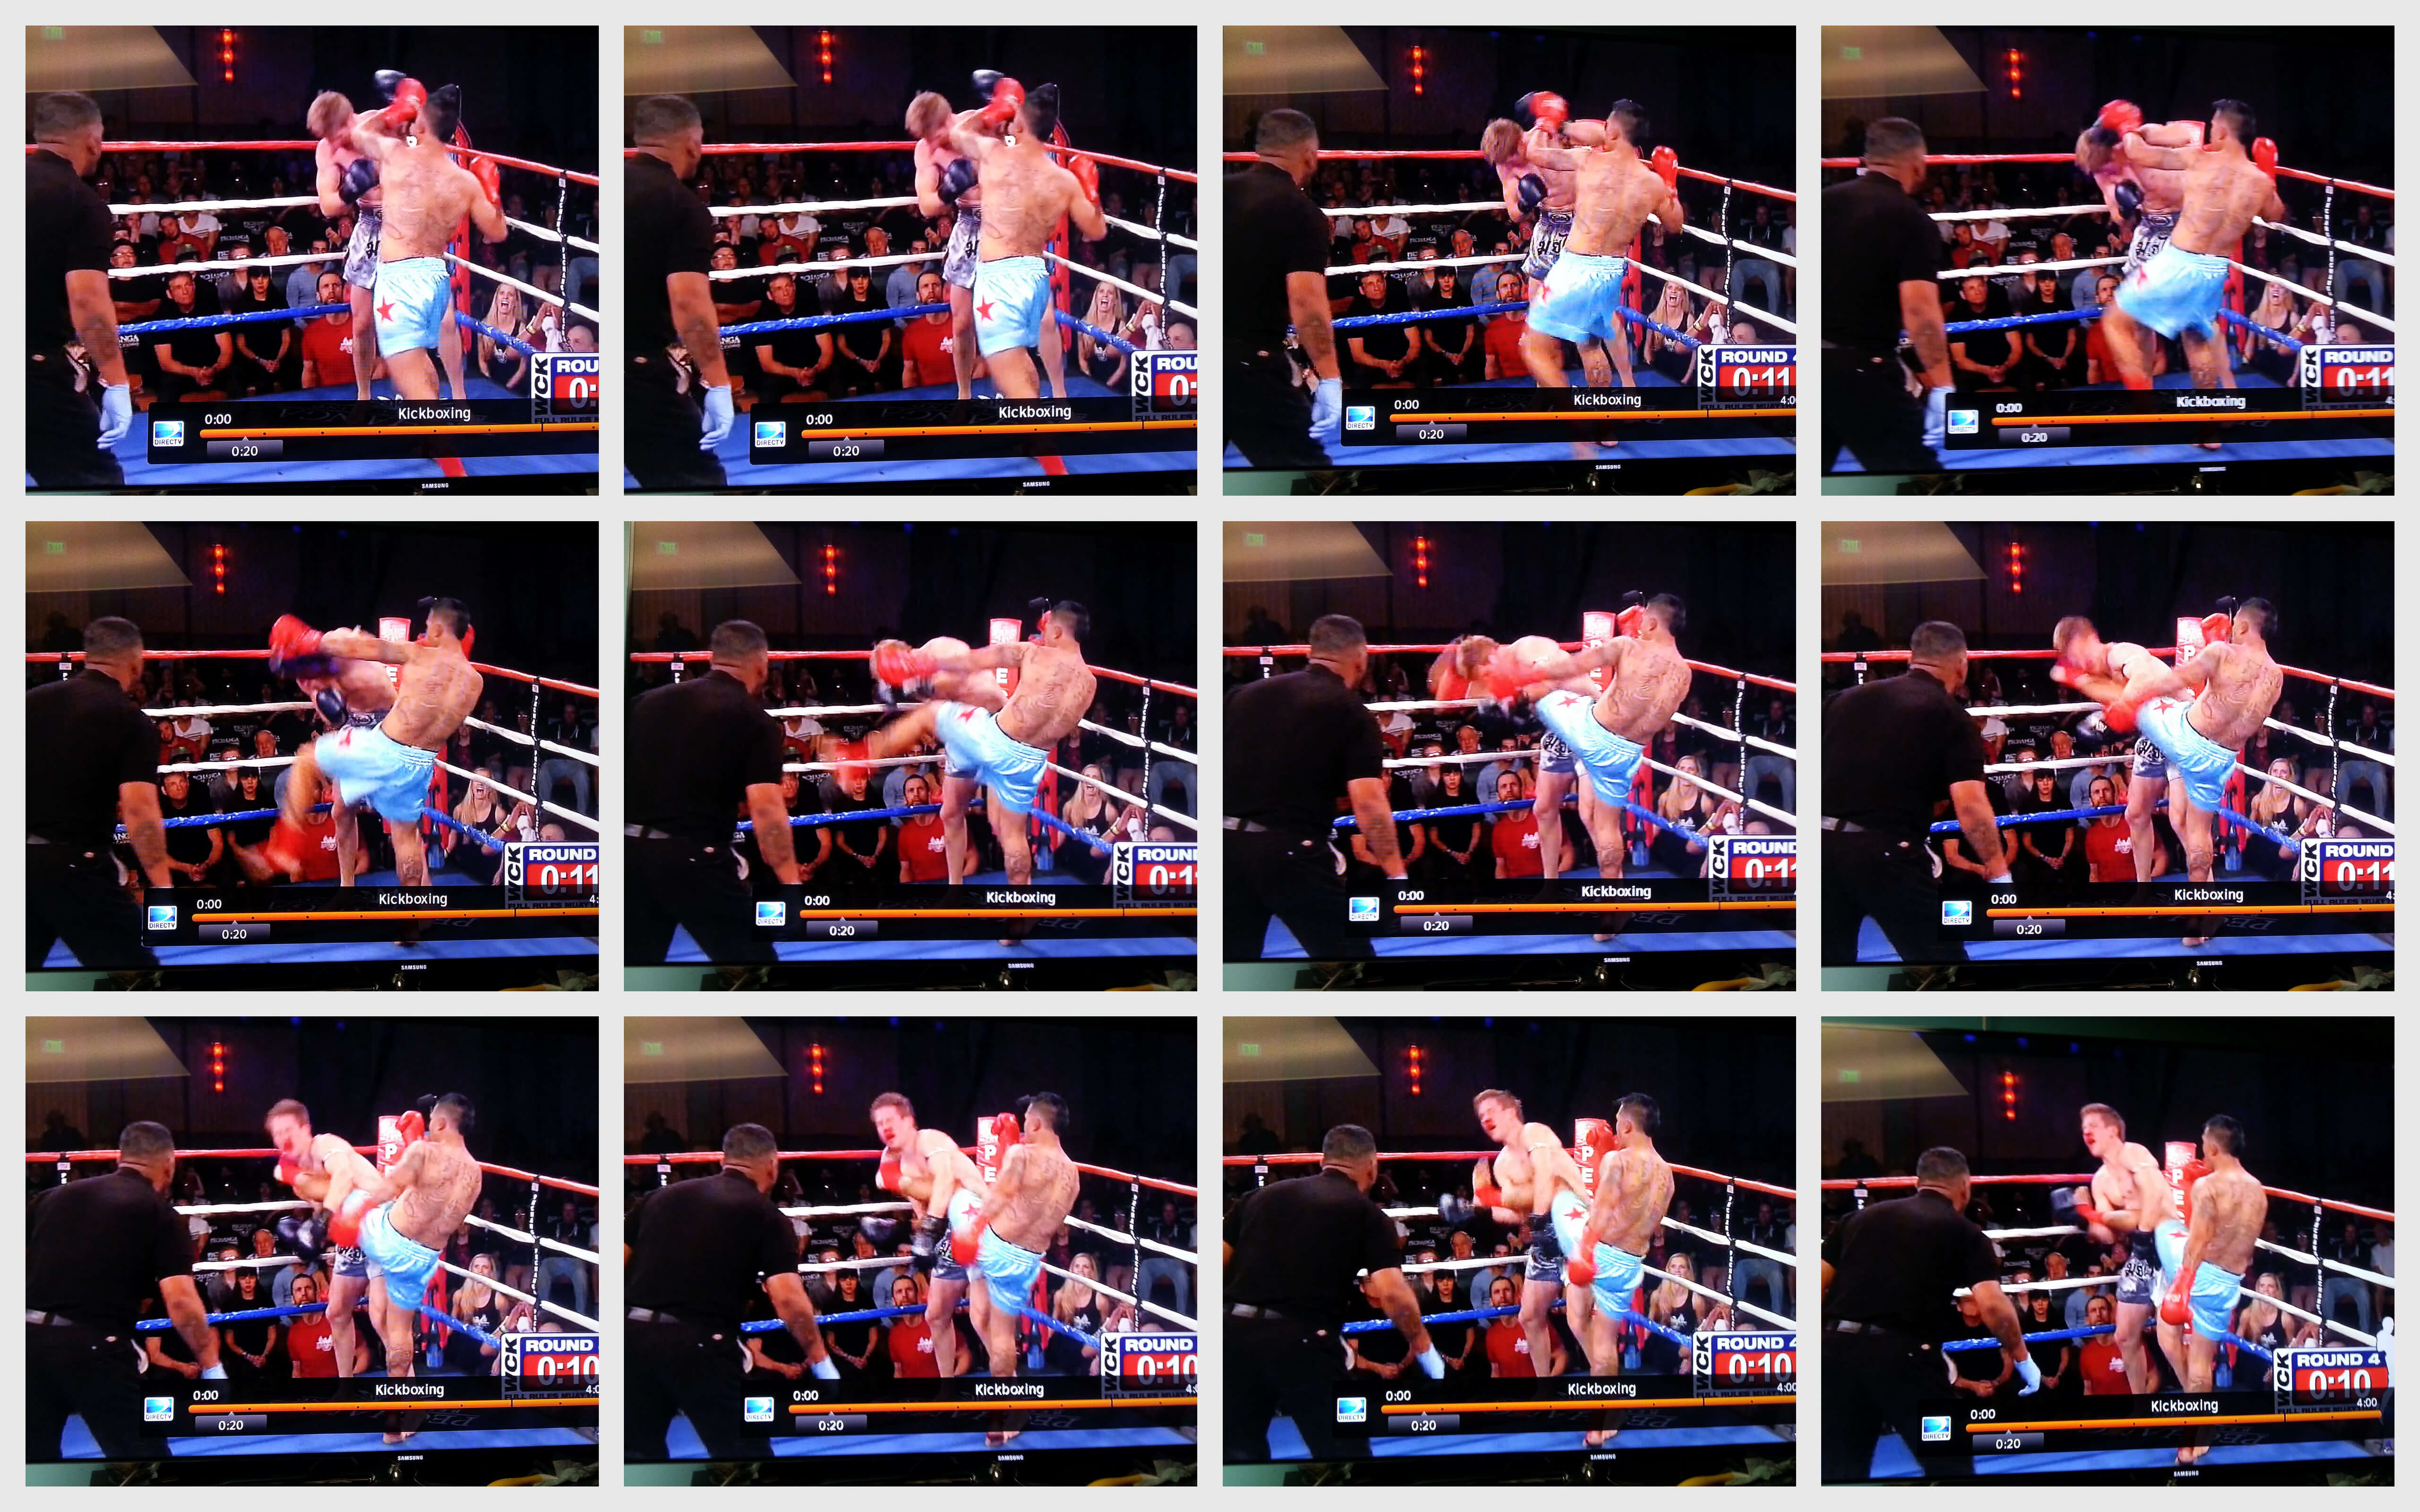 The final blow of the fight. A head kick landed by Garcia puts an exclamation mark on this WCK Title Fight.